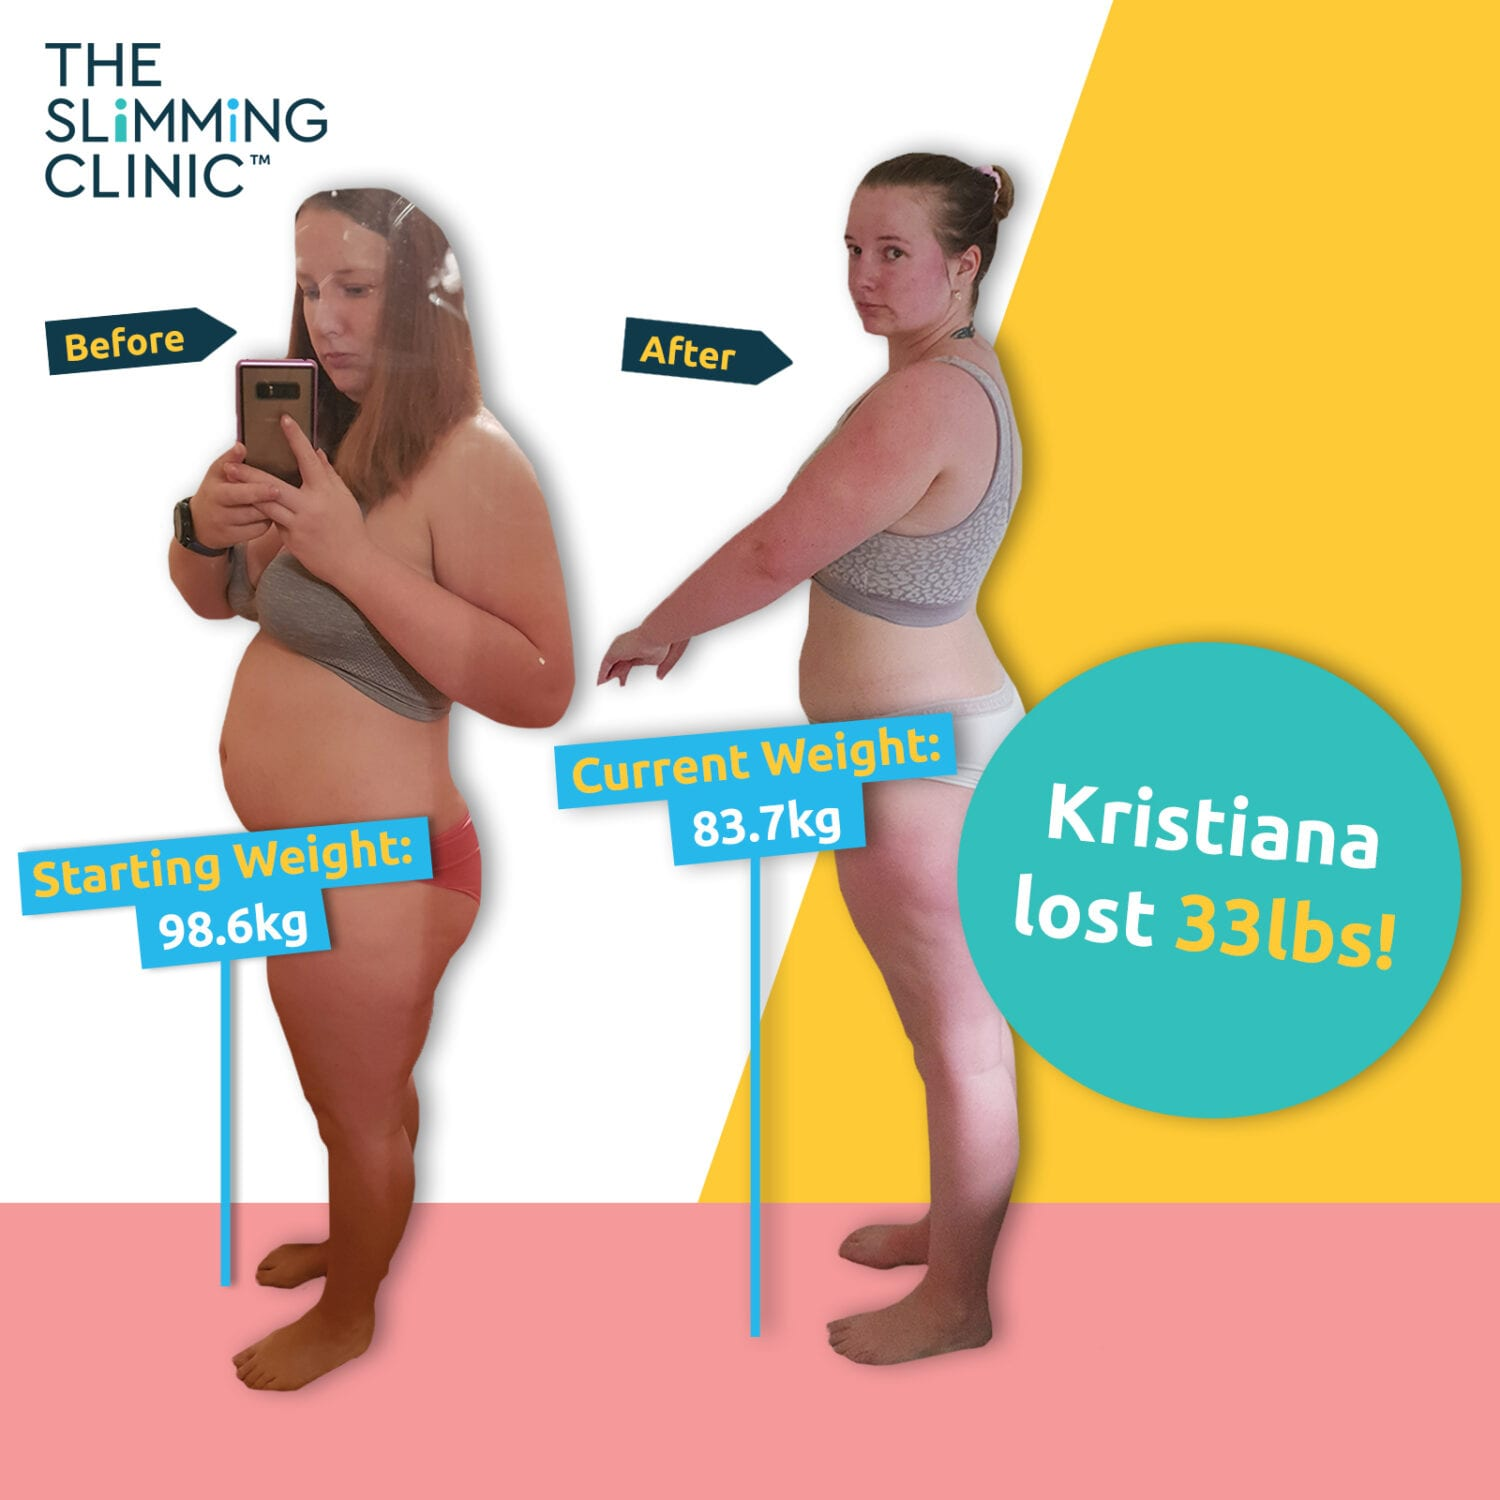 Kristiana's Weight Loss Story